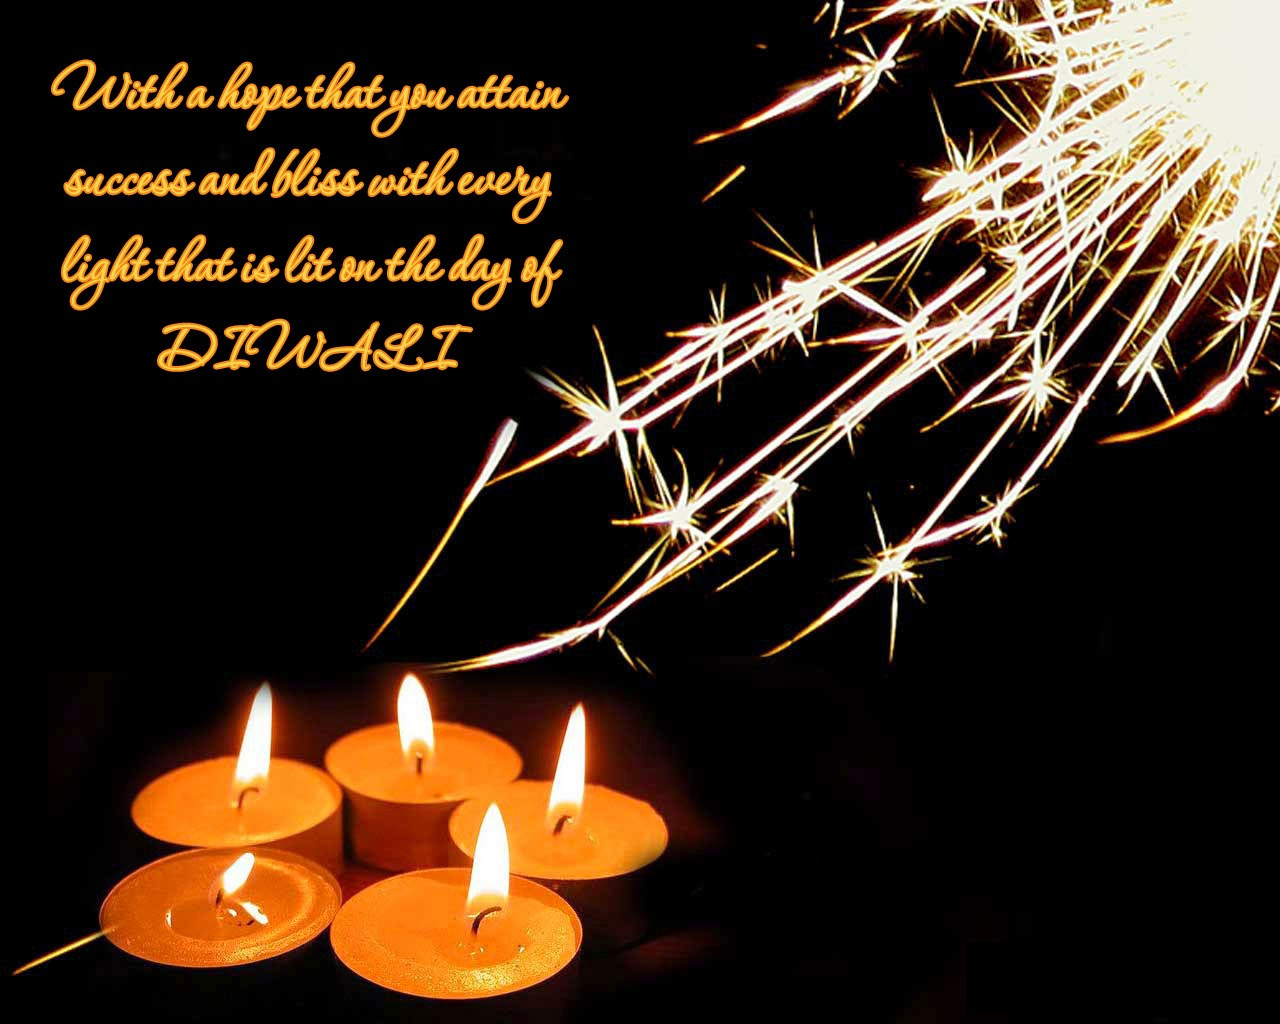 Hindi diwali greetings messages wishes and quotes happy incoming searches diwali message in hindi deepavali greetings in hindi deepawali messages in hindi happy diwali hindi sms 140 words jokes diwali kristyandbryce Choice Image